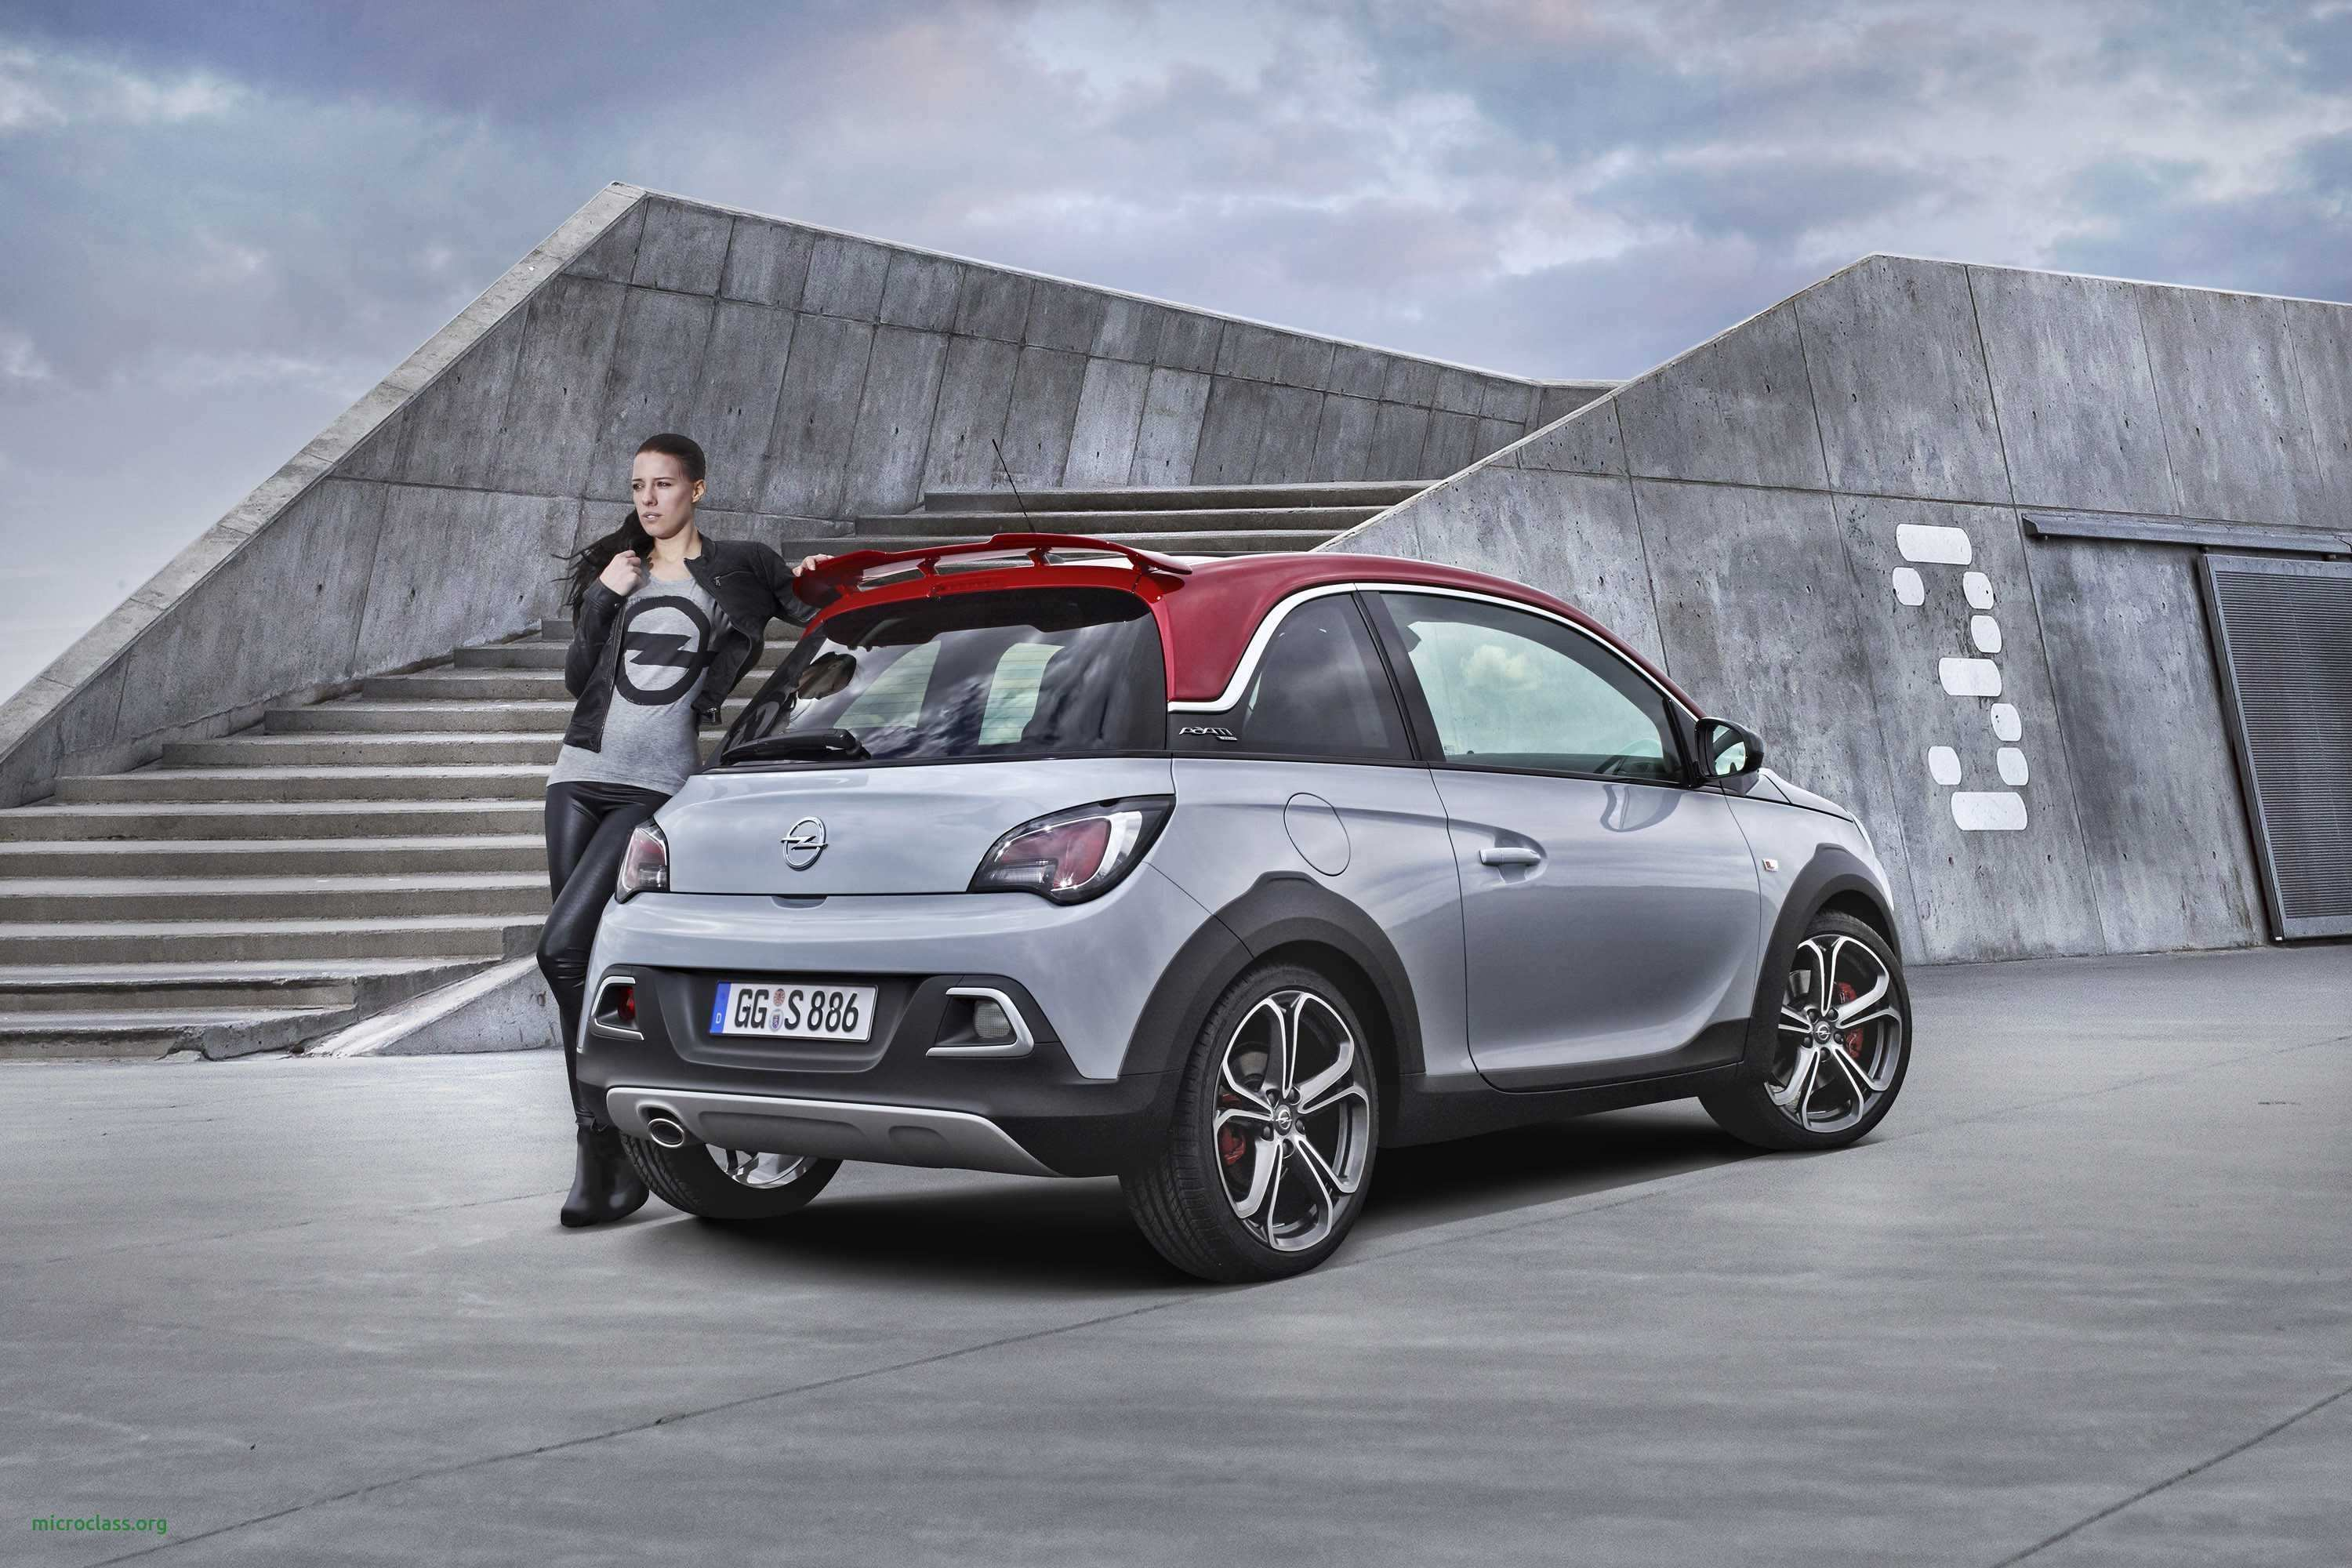 32 New 2019 Opel Adam Rocks Reviews